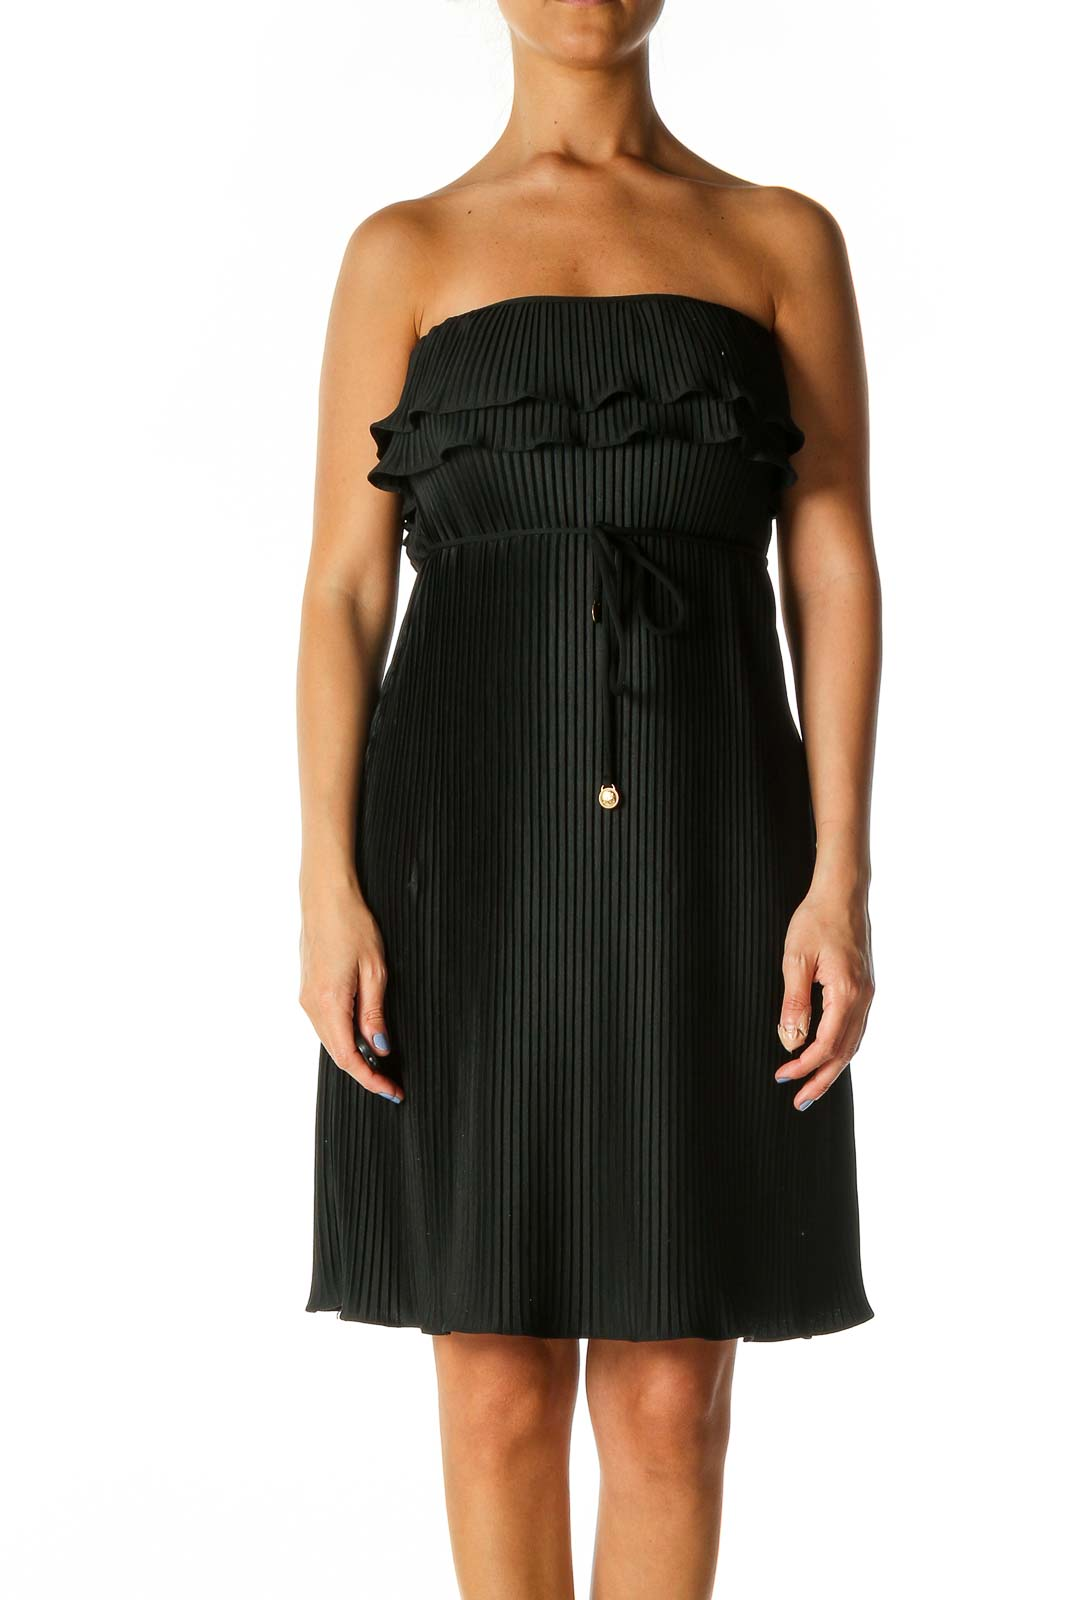 Black Solid Chic Fit & Flare Dress Front